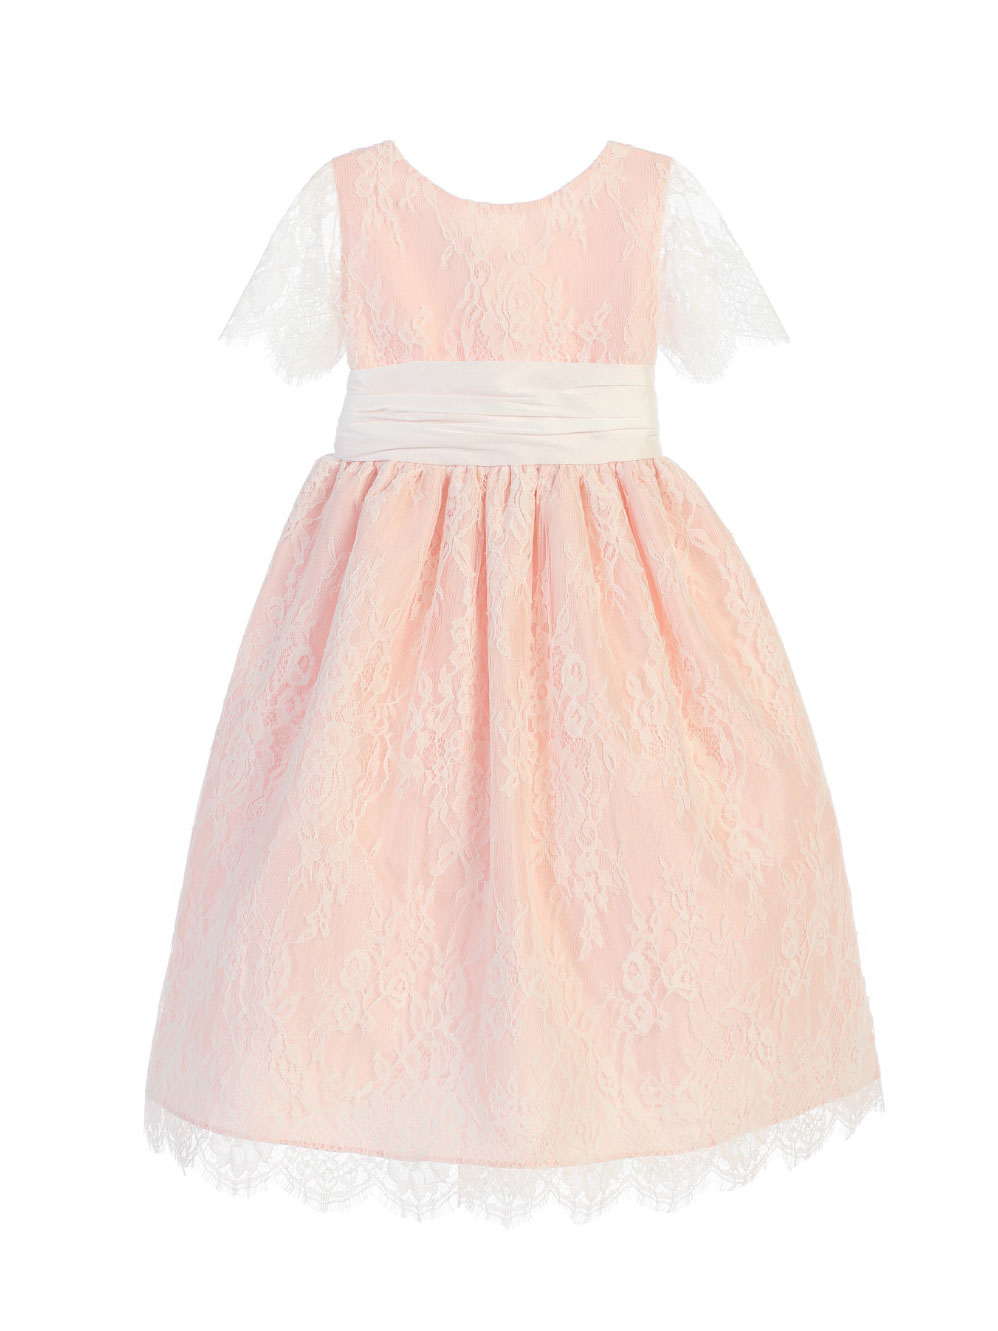 f78b15d3ce8 SK 724W - Girls Dress Style 724 - Short Sleeved French Lace and ...